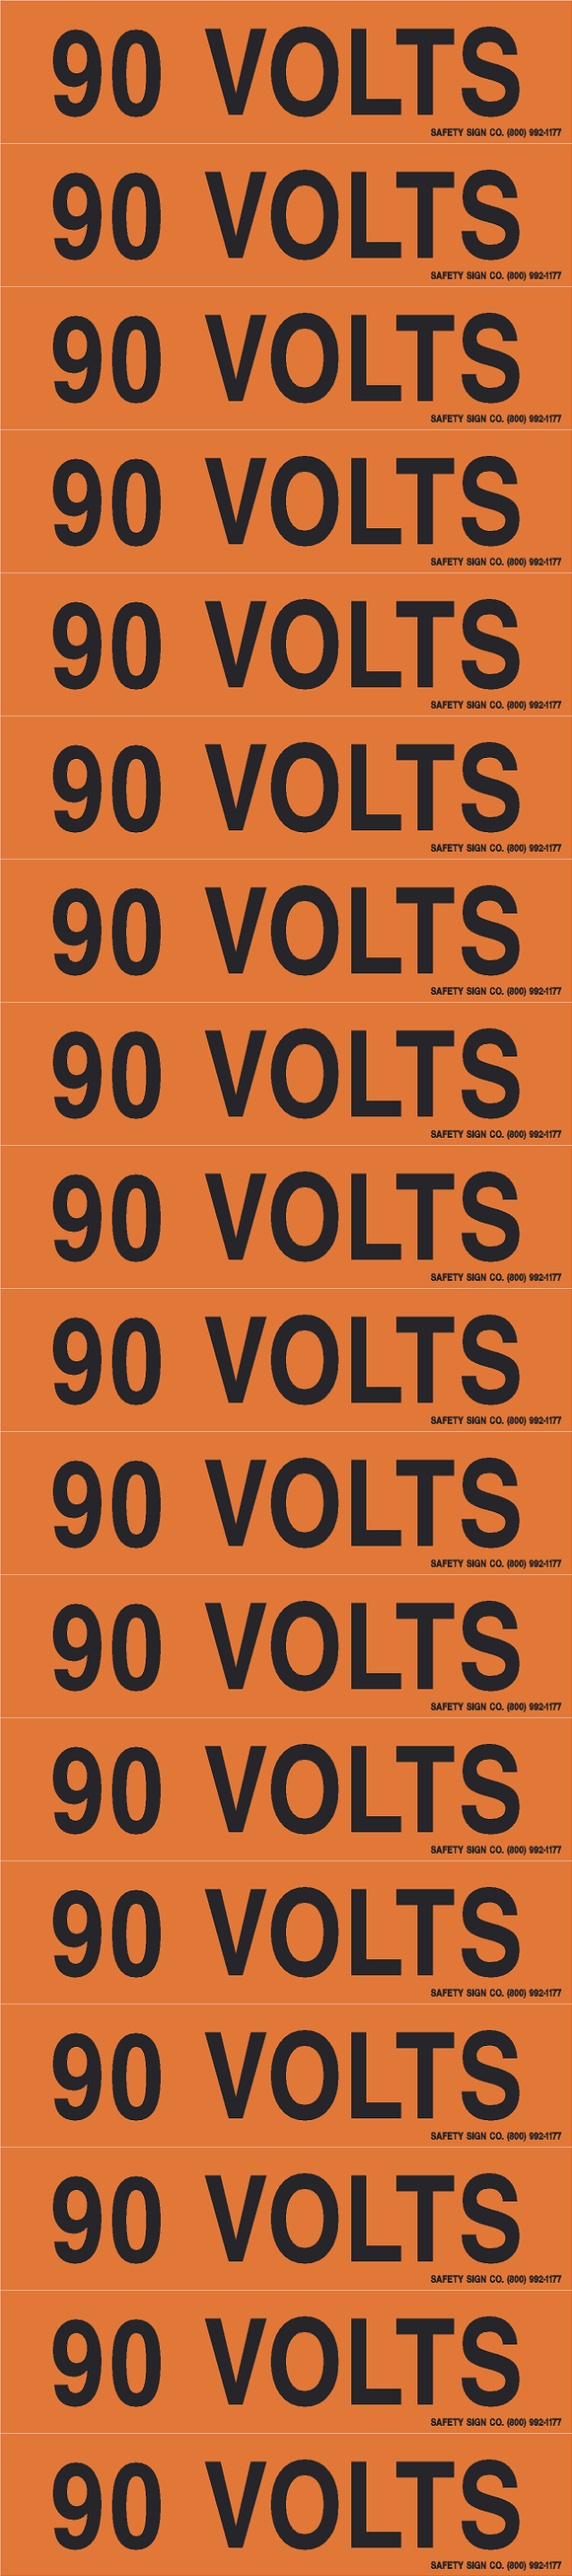 90 VOLTS PIMAR® Vinyl Press On Label (10 PACK)